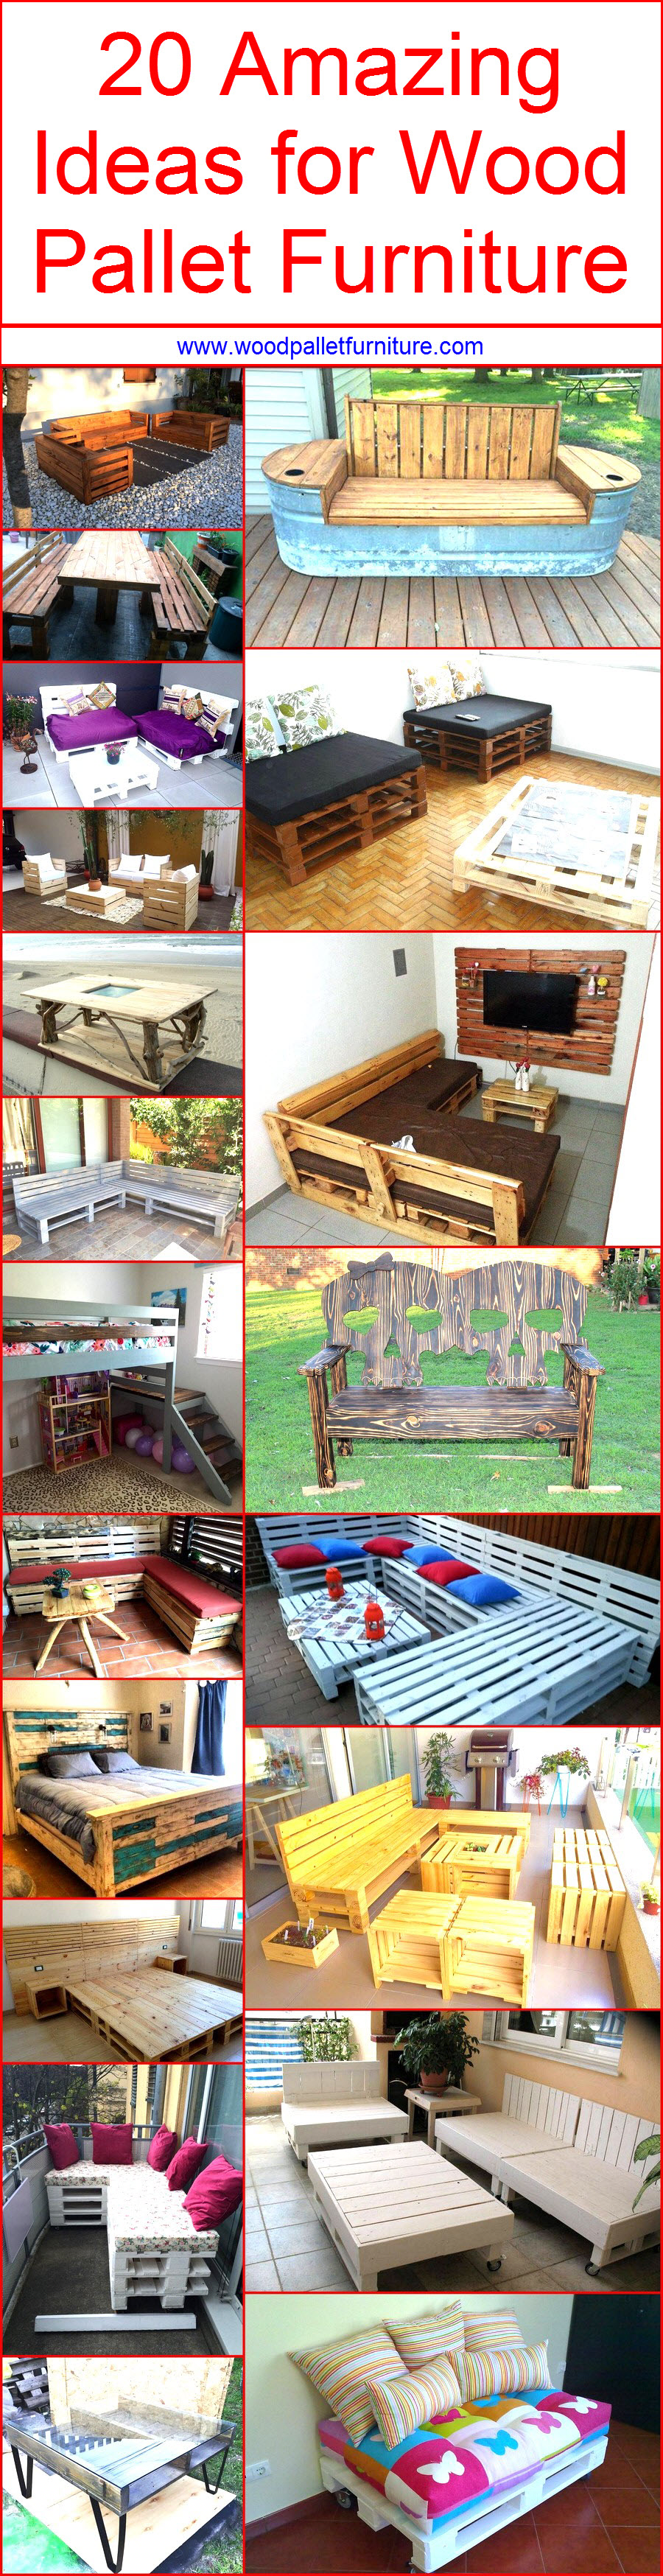 20-amazing-ideas-for-wood-pallet-furniture